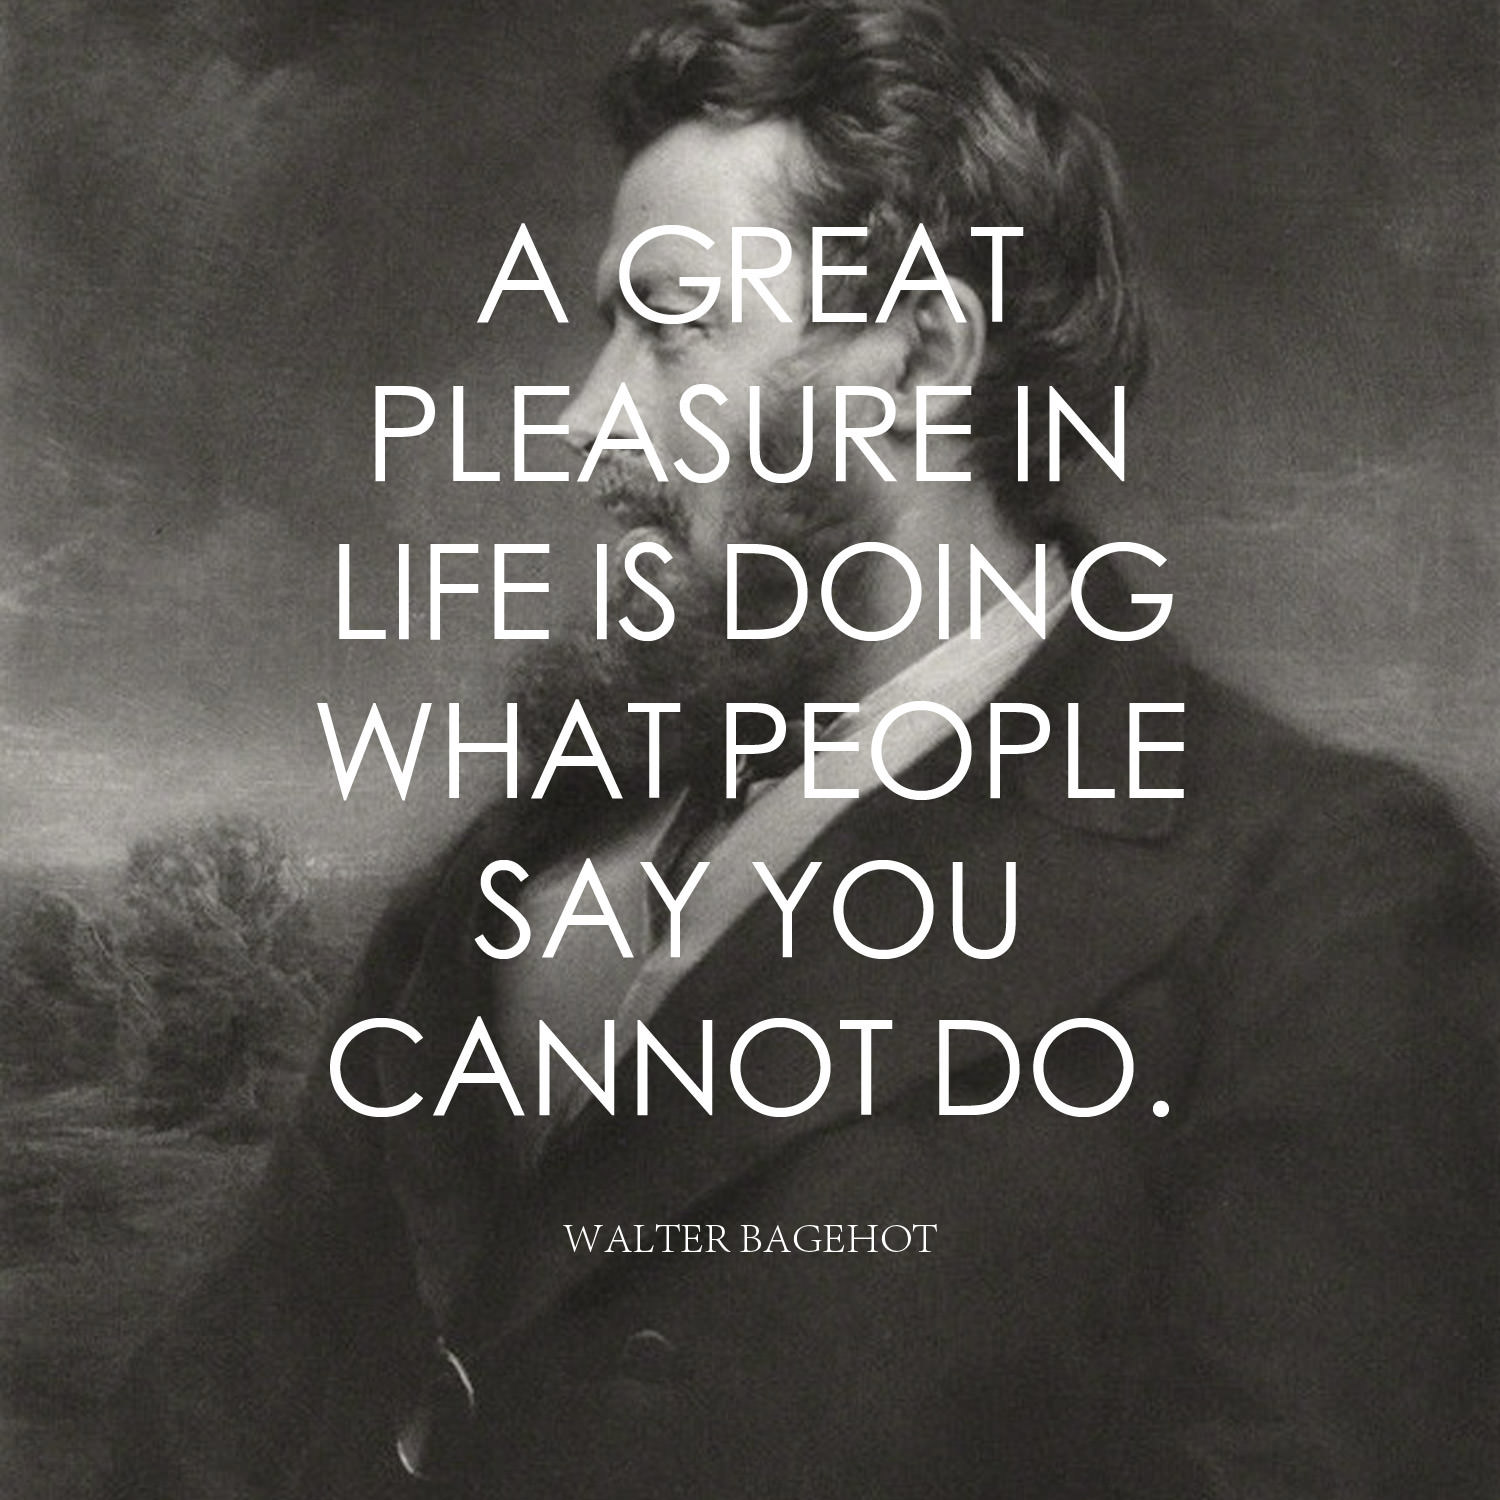 A great pleasure in life is doing what people say you cannot do Walter